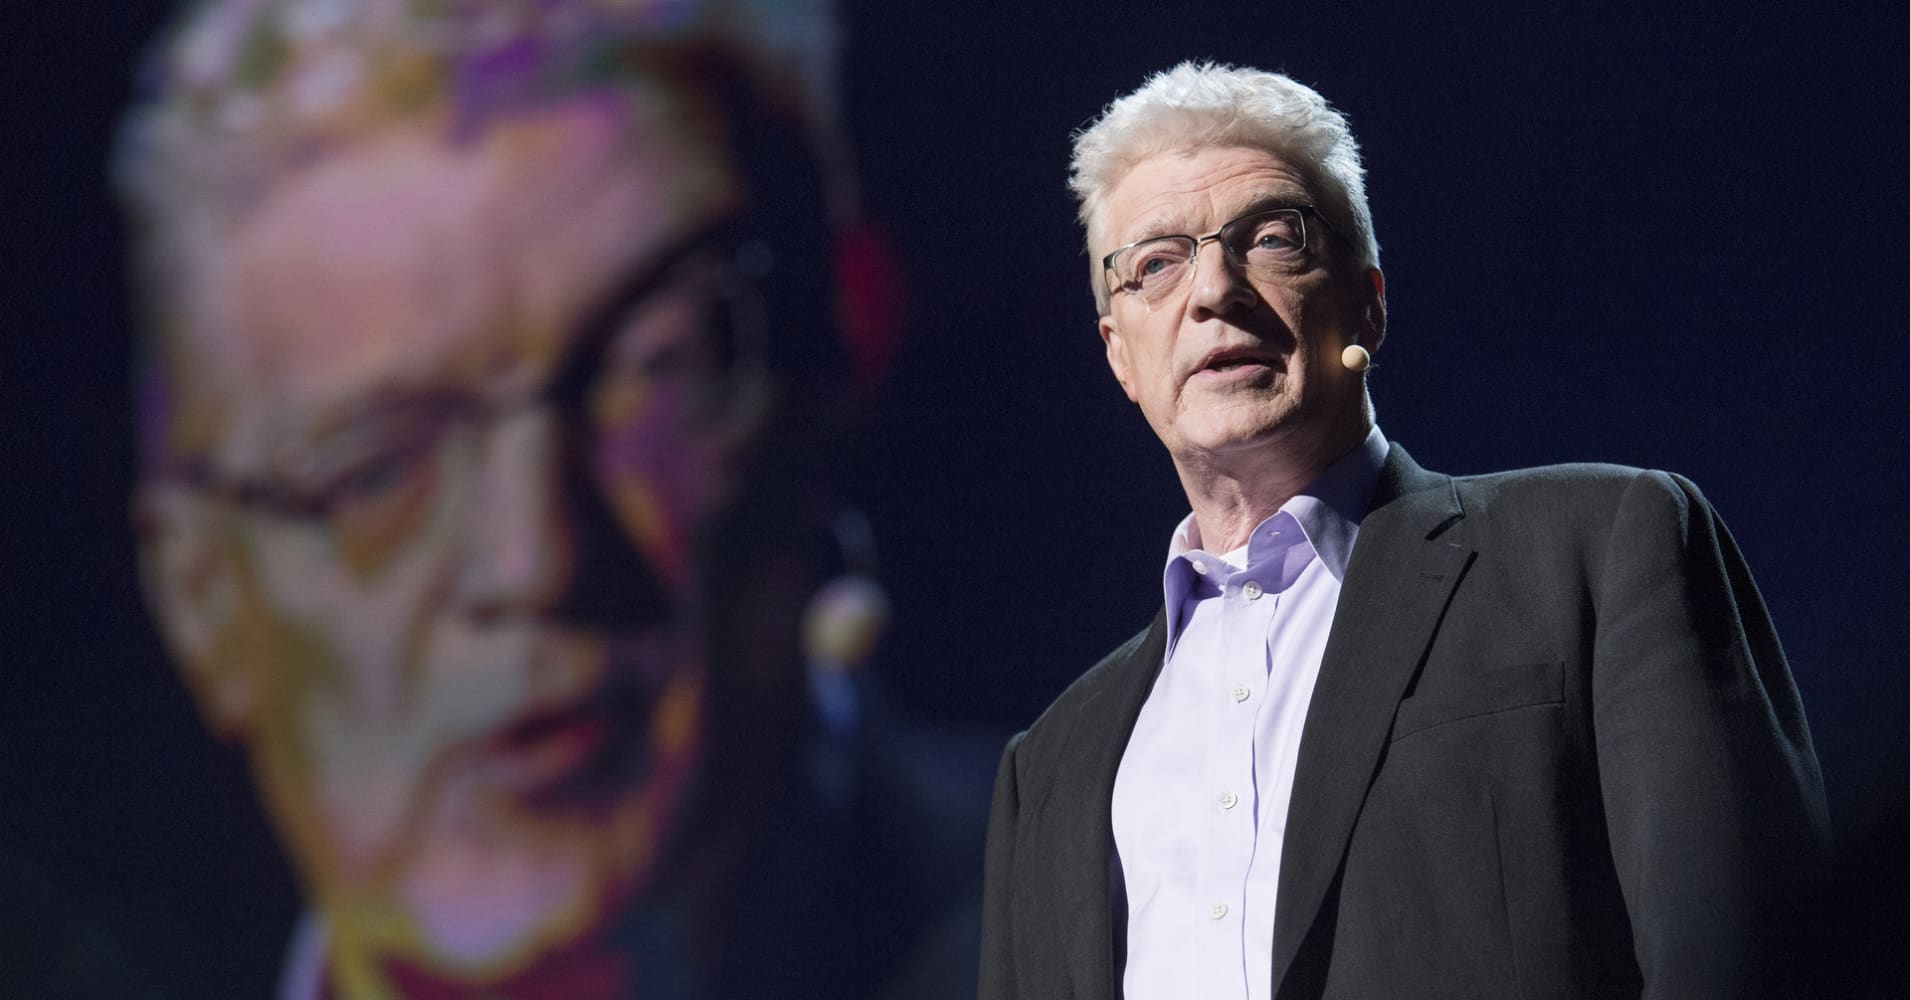 Sir Ken Robinson at TED2013.